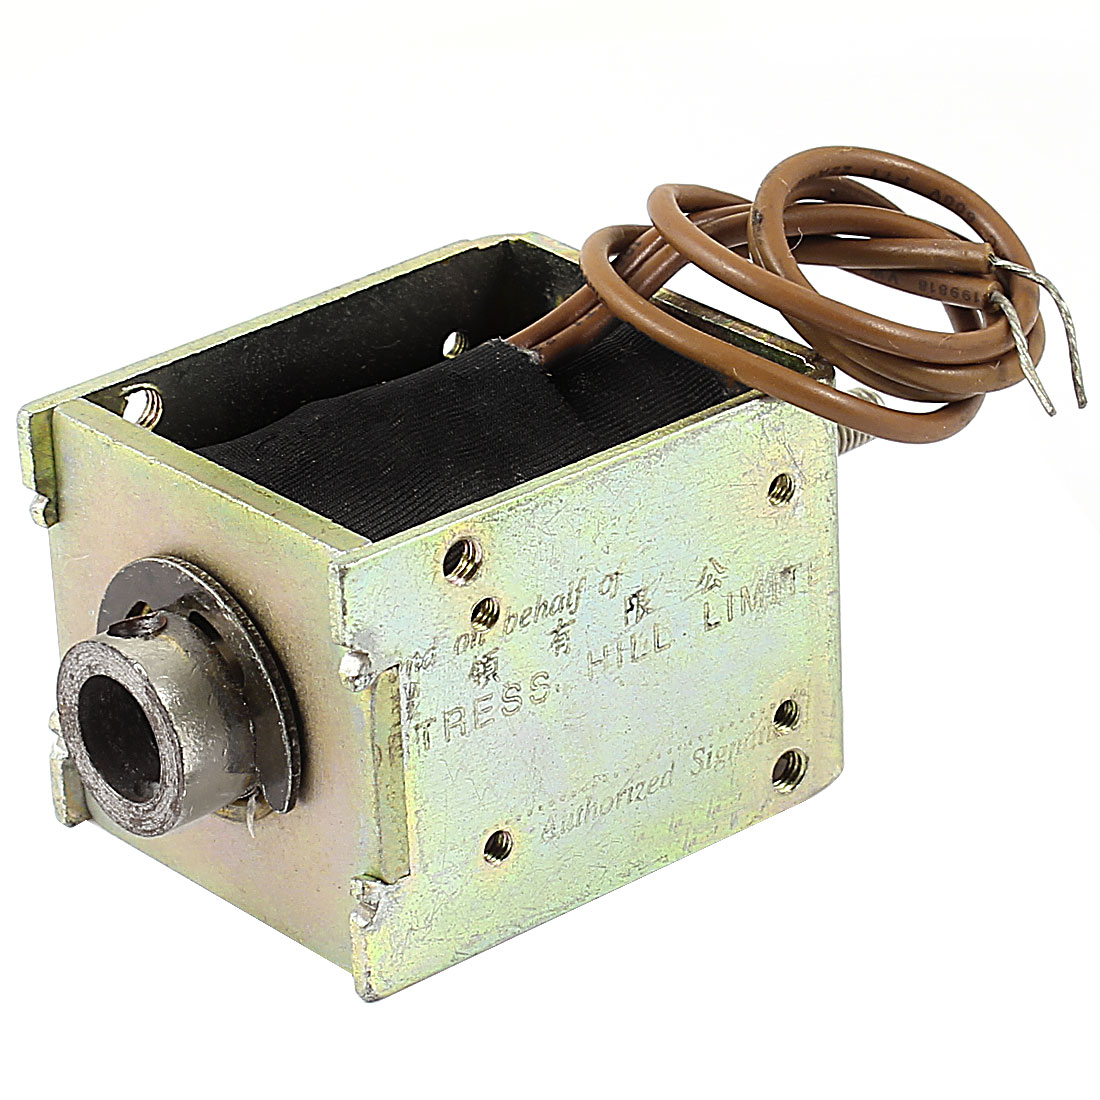 12mm/400g 60.63W Power Wired Open Frame Push Pull Type Solenoid Electromagnet DC 48V 1.26A